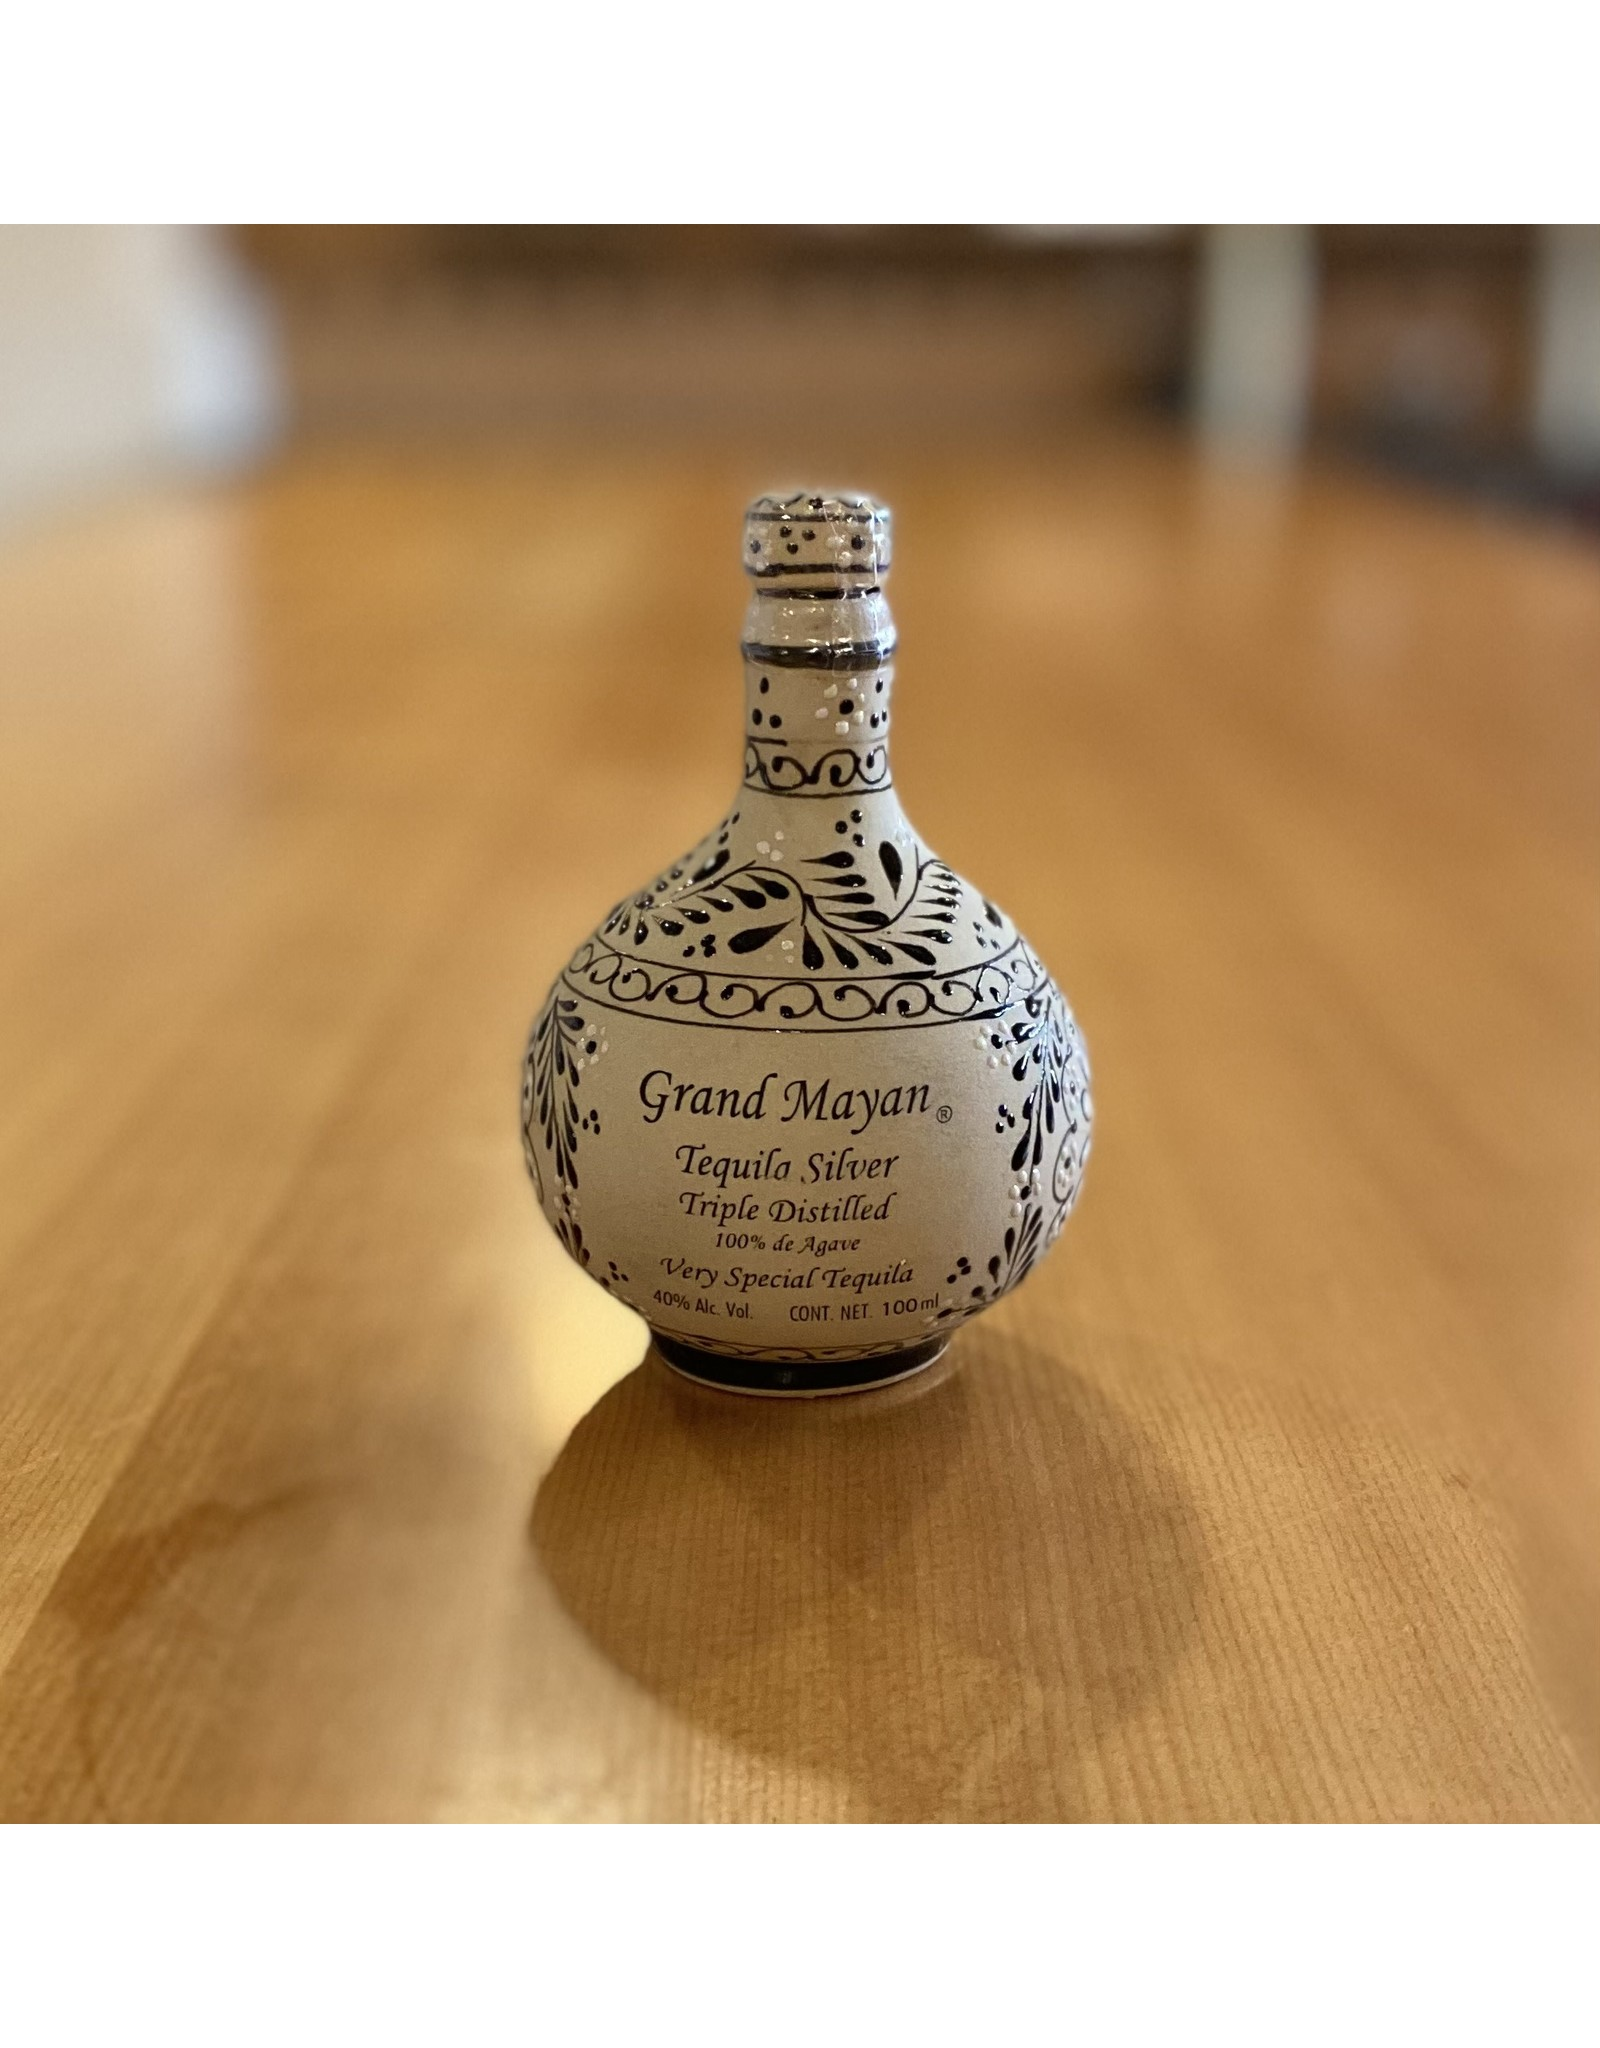 Grand Mayan Triple Distilled Silver Tequila 100ml - Mexico